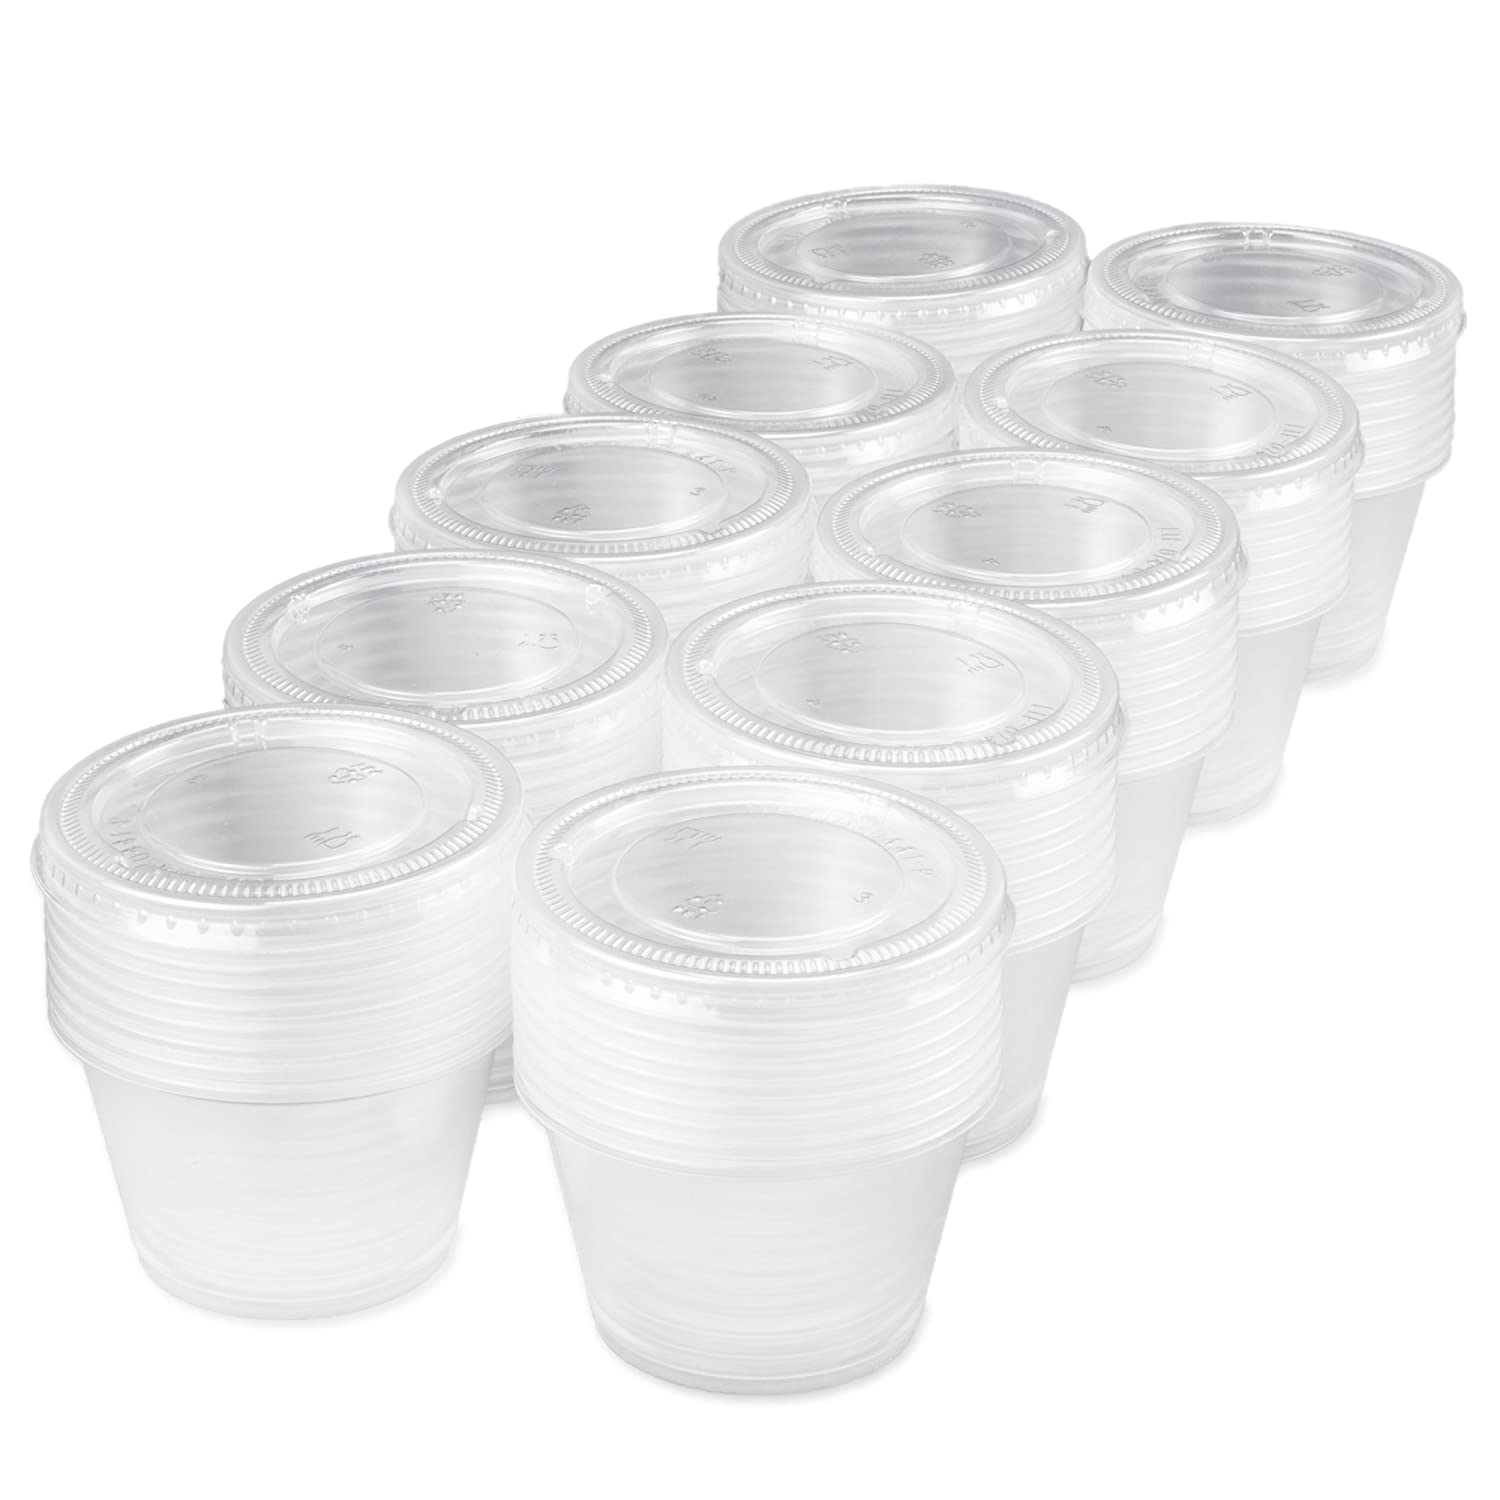 100-pack of Disposable Clear Plastic Condiment Storage Cups with Lids - Choose 2 oz. or 4 oz. - For Restaurant, Home, Gelatin Shots by Back of House Ltd. (4 oz.)